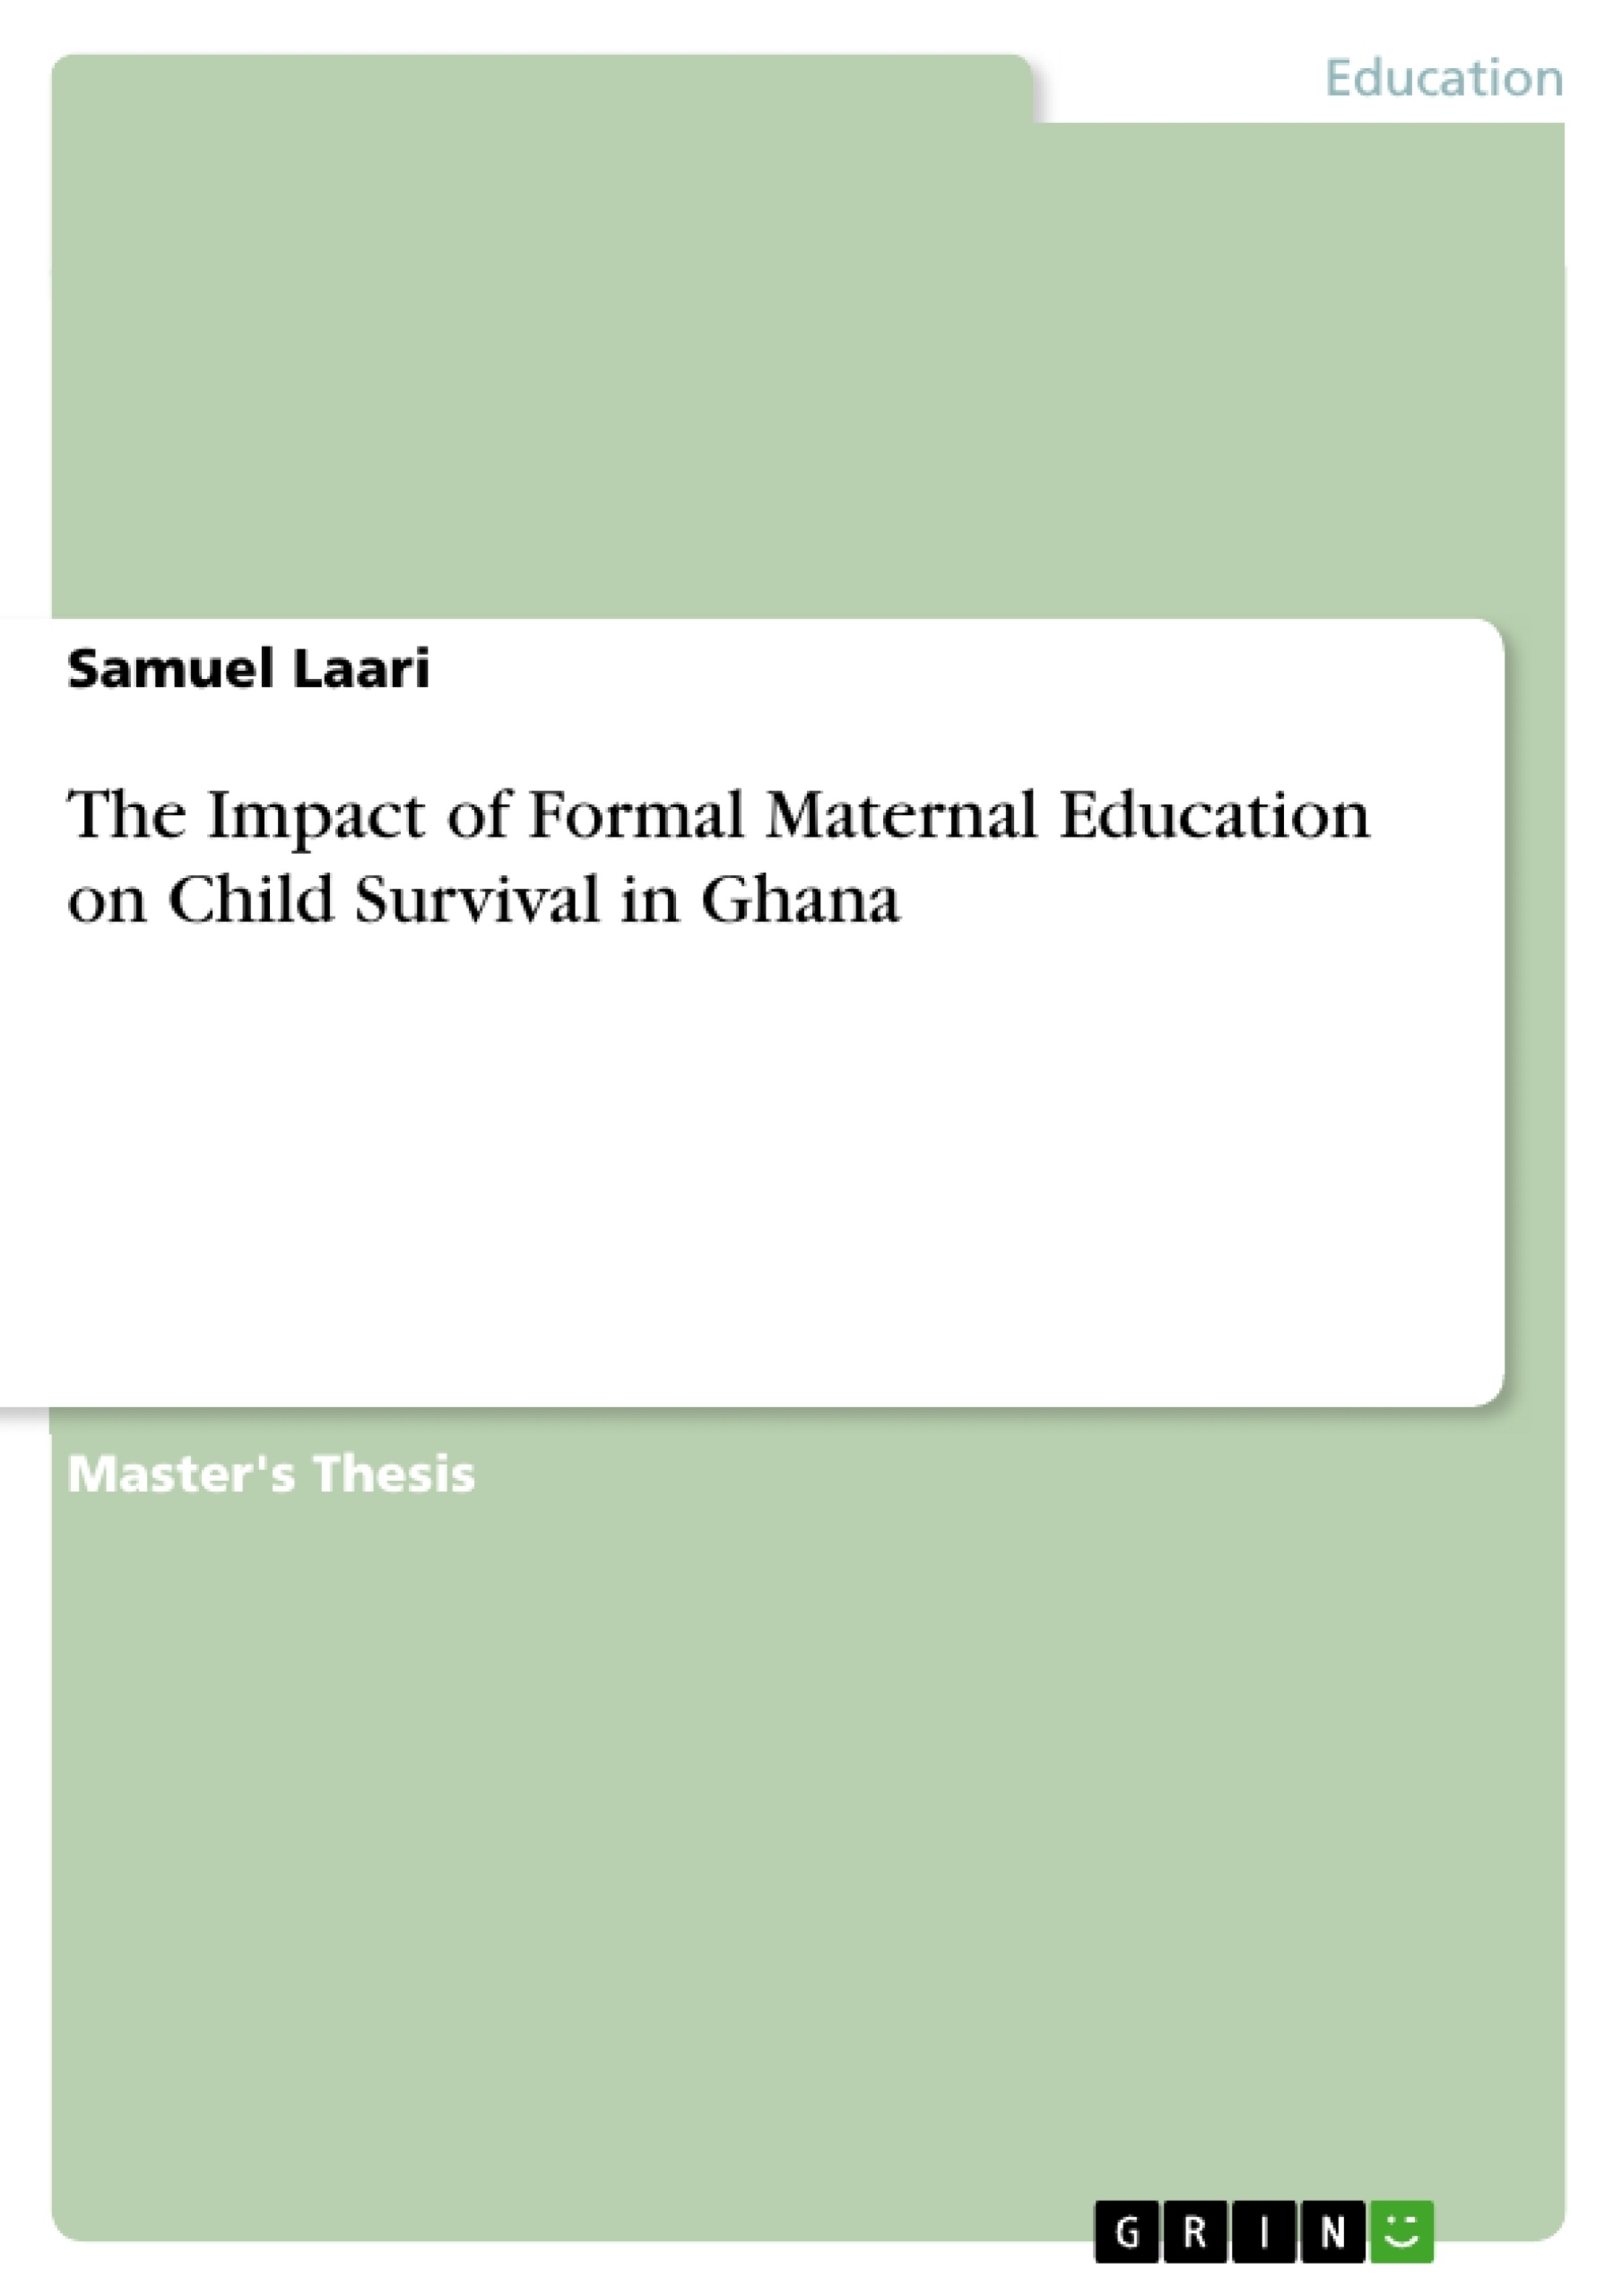 Title: The Impact of Formal Maternal Education on Child Survival in Ghana